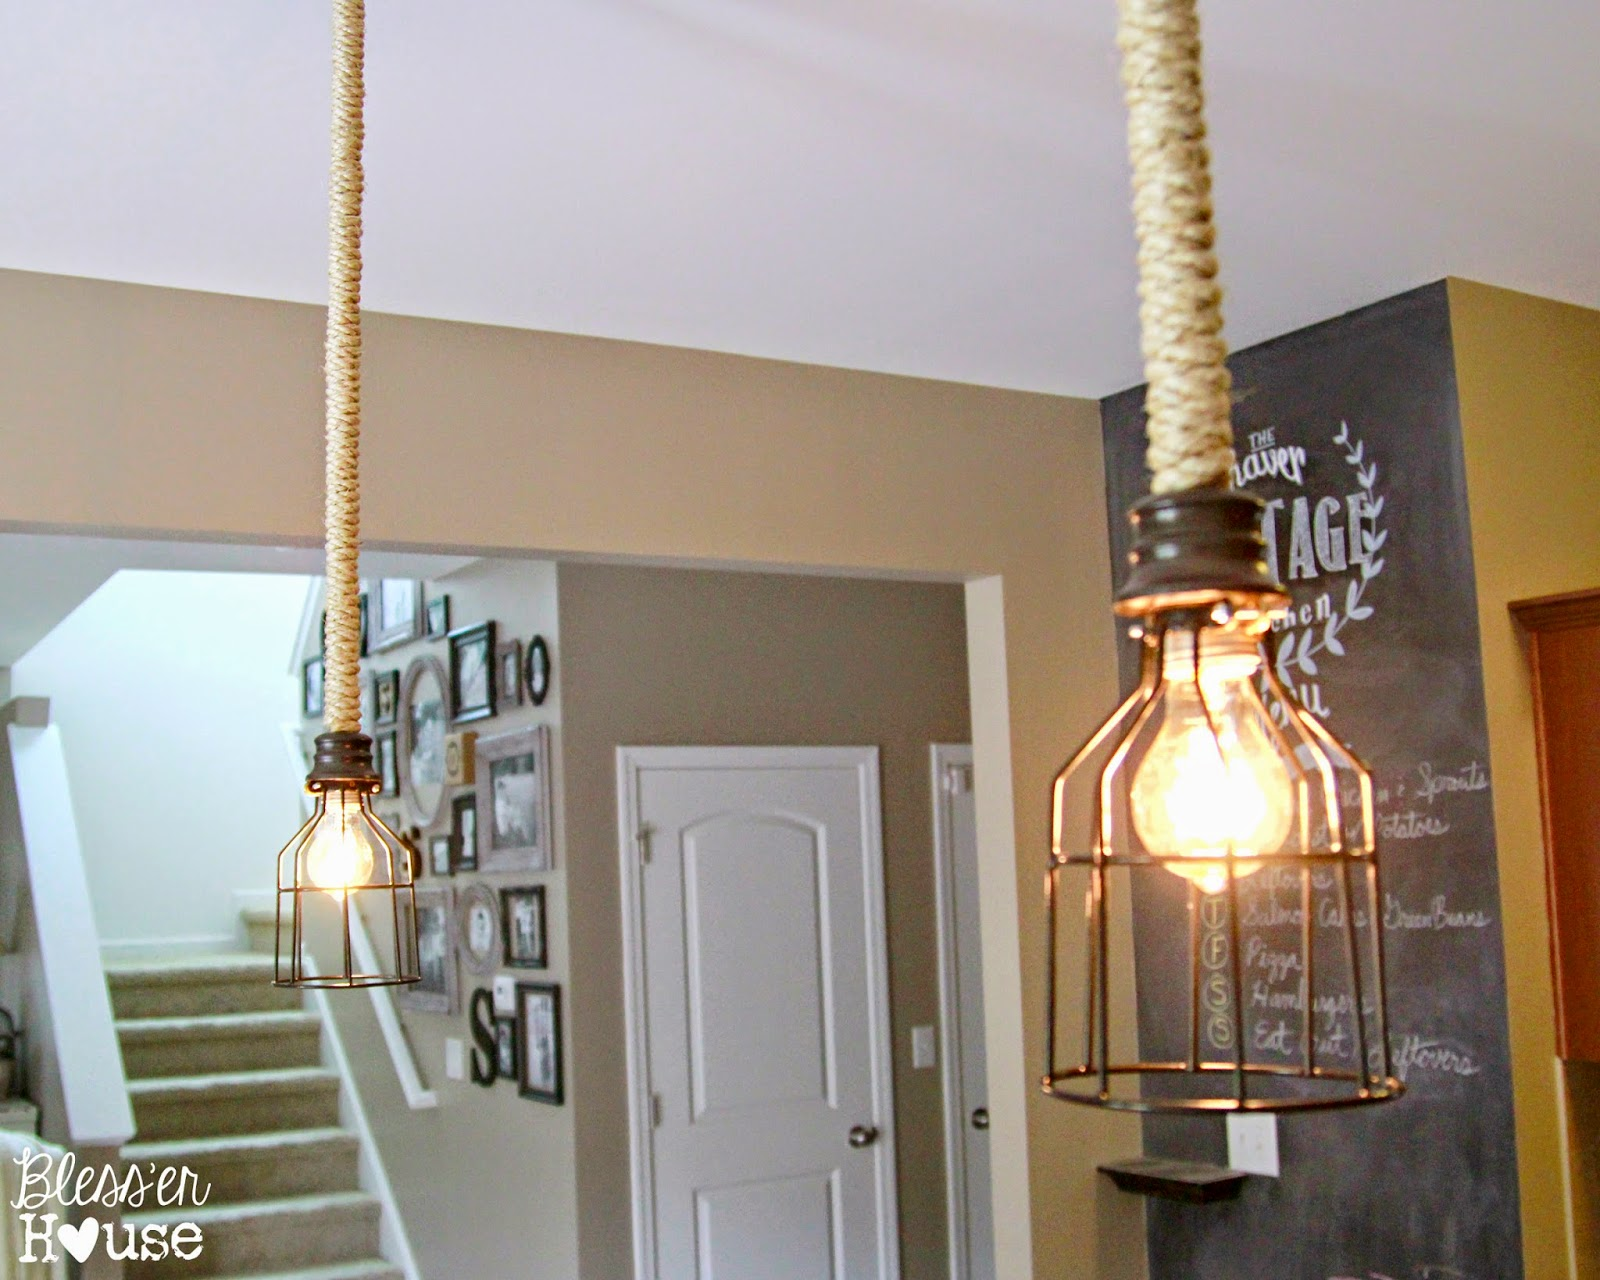 DIY Industrial Pendant Light for Under $10 Bless er House